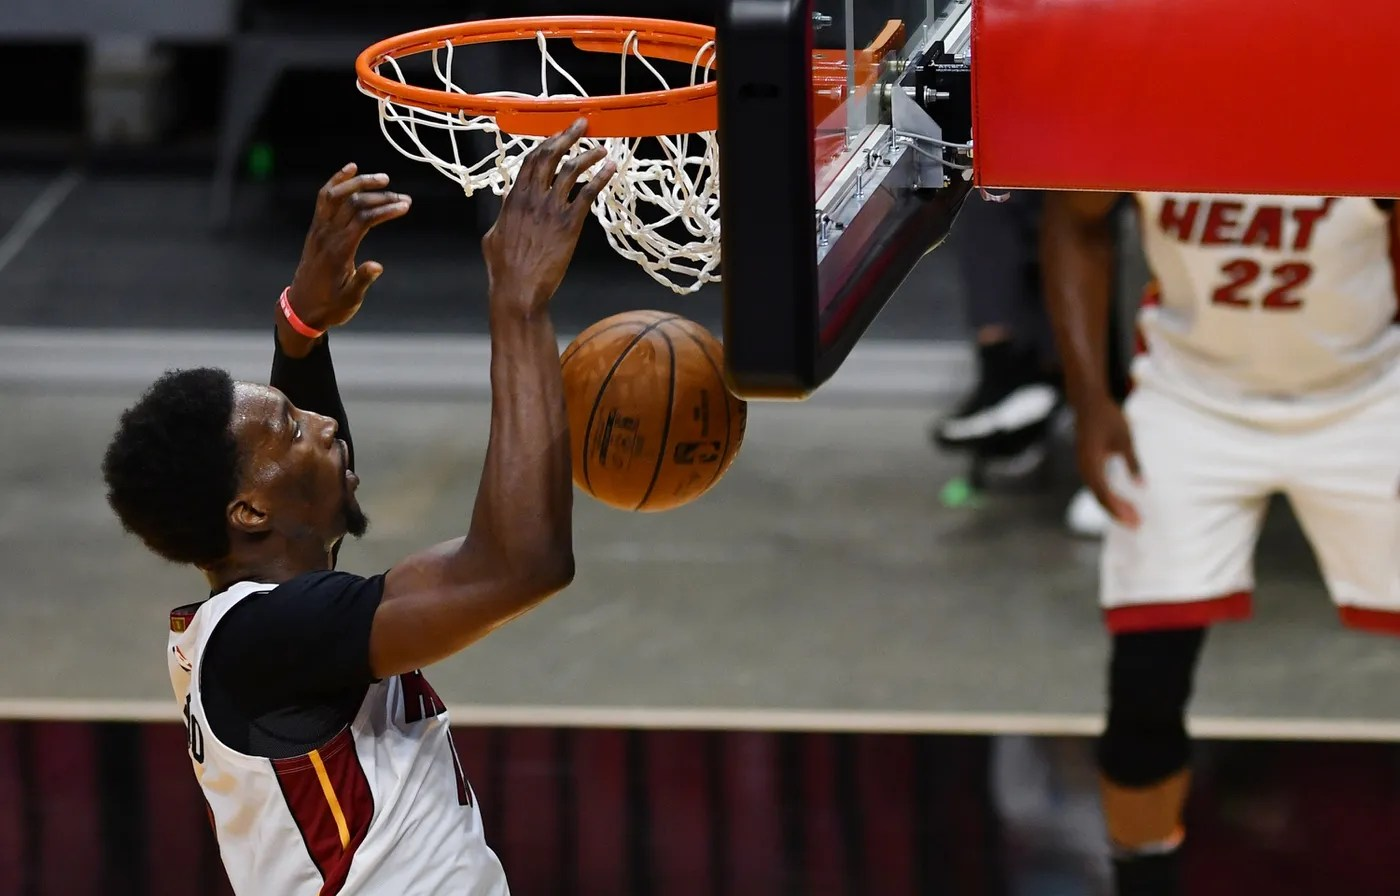 Apr 3, 2021; Miami, Florida, USA; Miami Heat center Bam Adebayo (13) dunks during the third quarter of a game against the Cleveland Cavaliers at American Airlines Arena. Mandatory Credit: Mary Holt-USA TODAY Sports